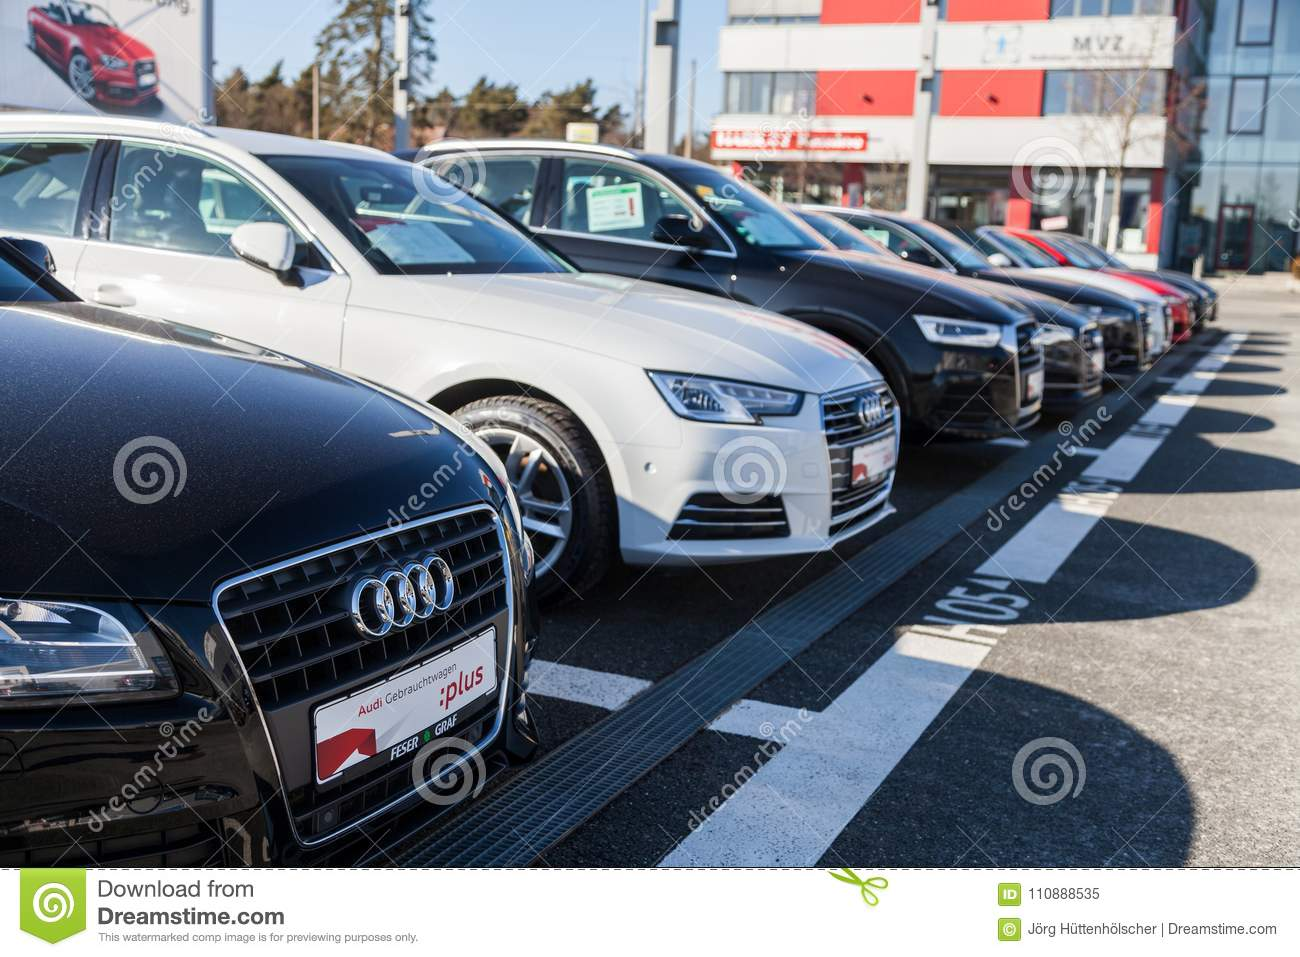 Audi Emblem On An Audi Car Editorial Image Image Of Engineers - Audi car emblem